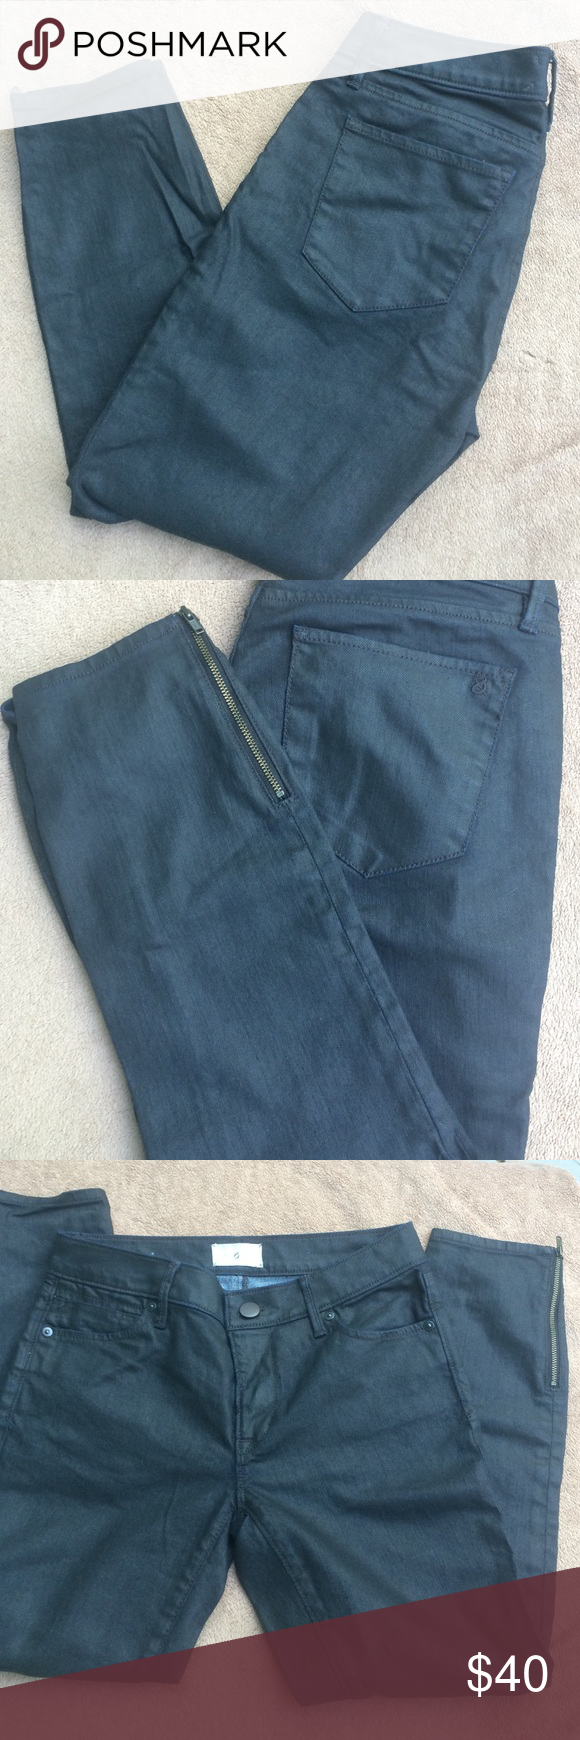 Black coated skinny crops Black skinny cropped jeans. Zipper at ankle. Worn twice. Excellent condition. Size 26/2 P. Lou & Grey - Modern Skinny Ankle. Lou & Grey Jeans Ankle & Cropped